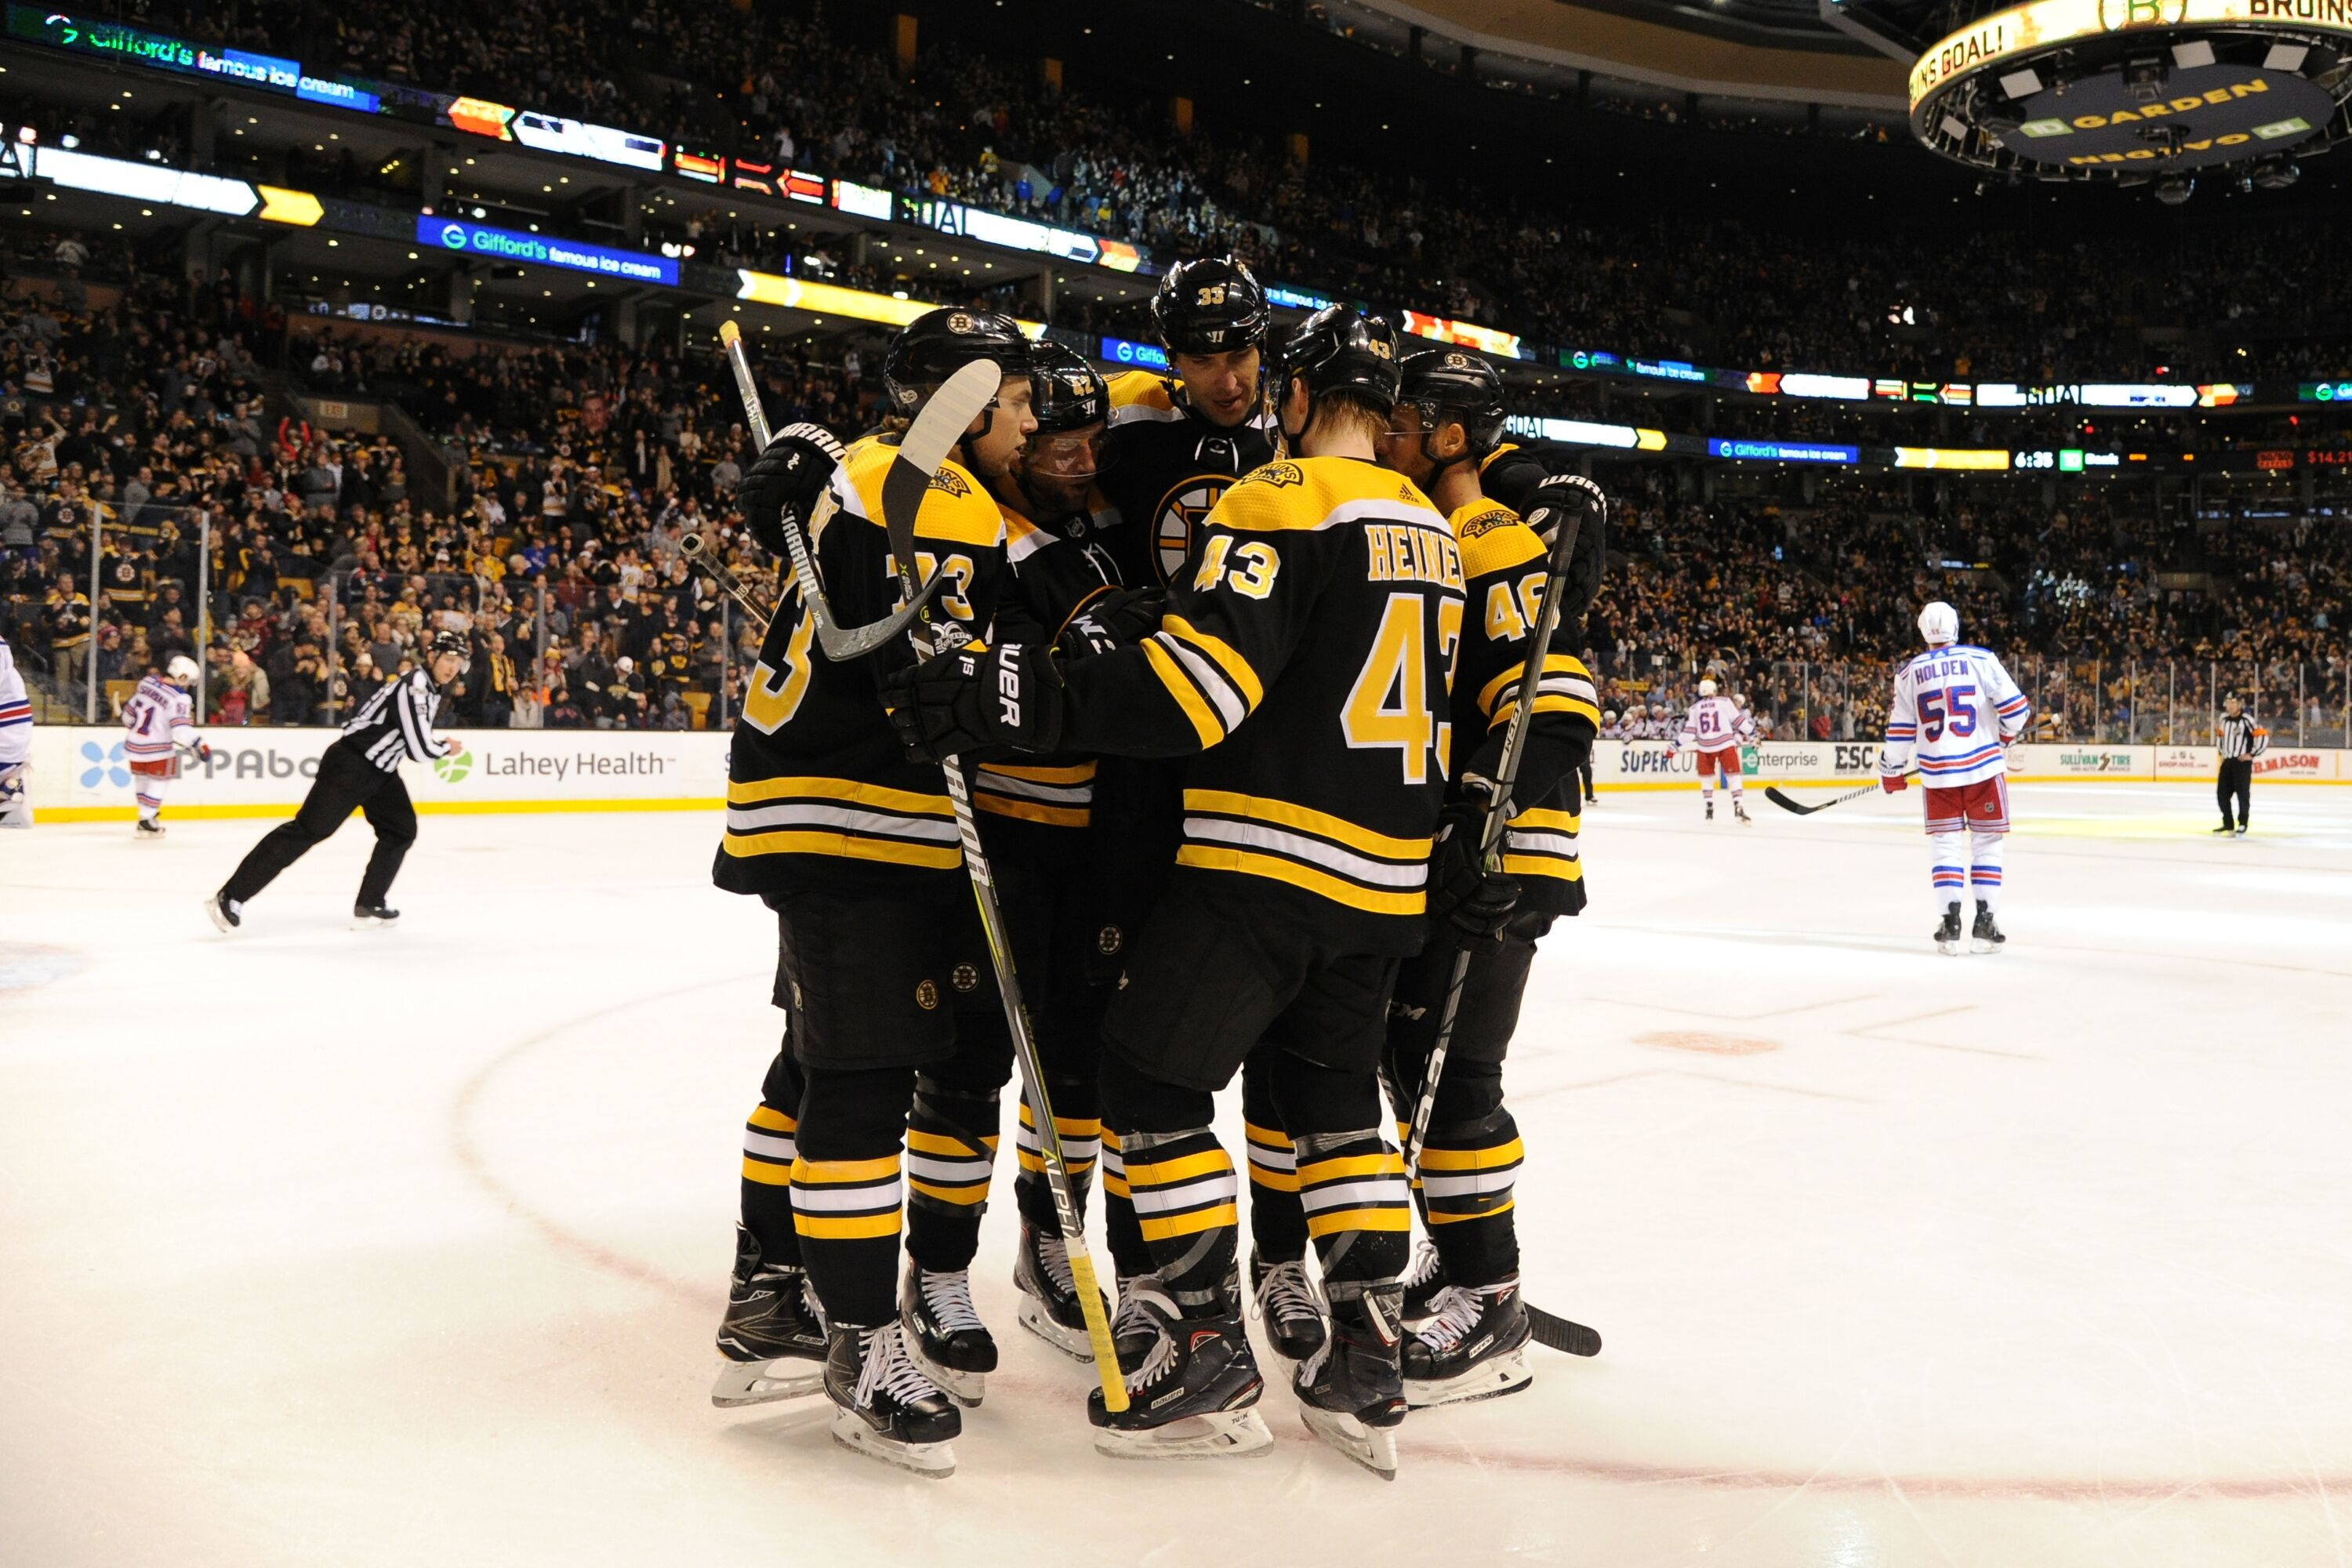 893939224-new-york-rangers-v-boston-bruins.jpg